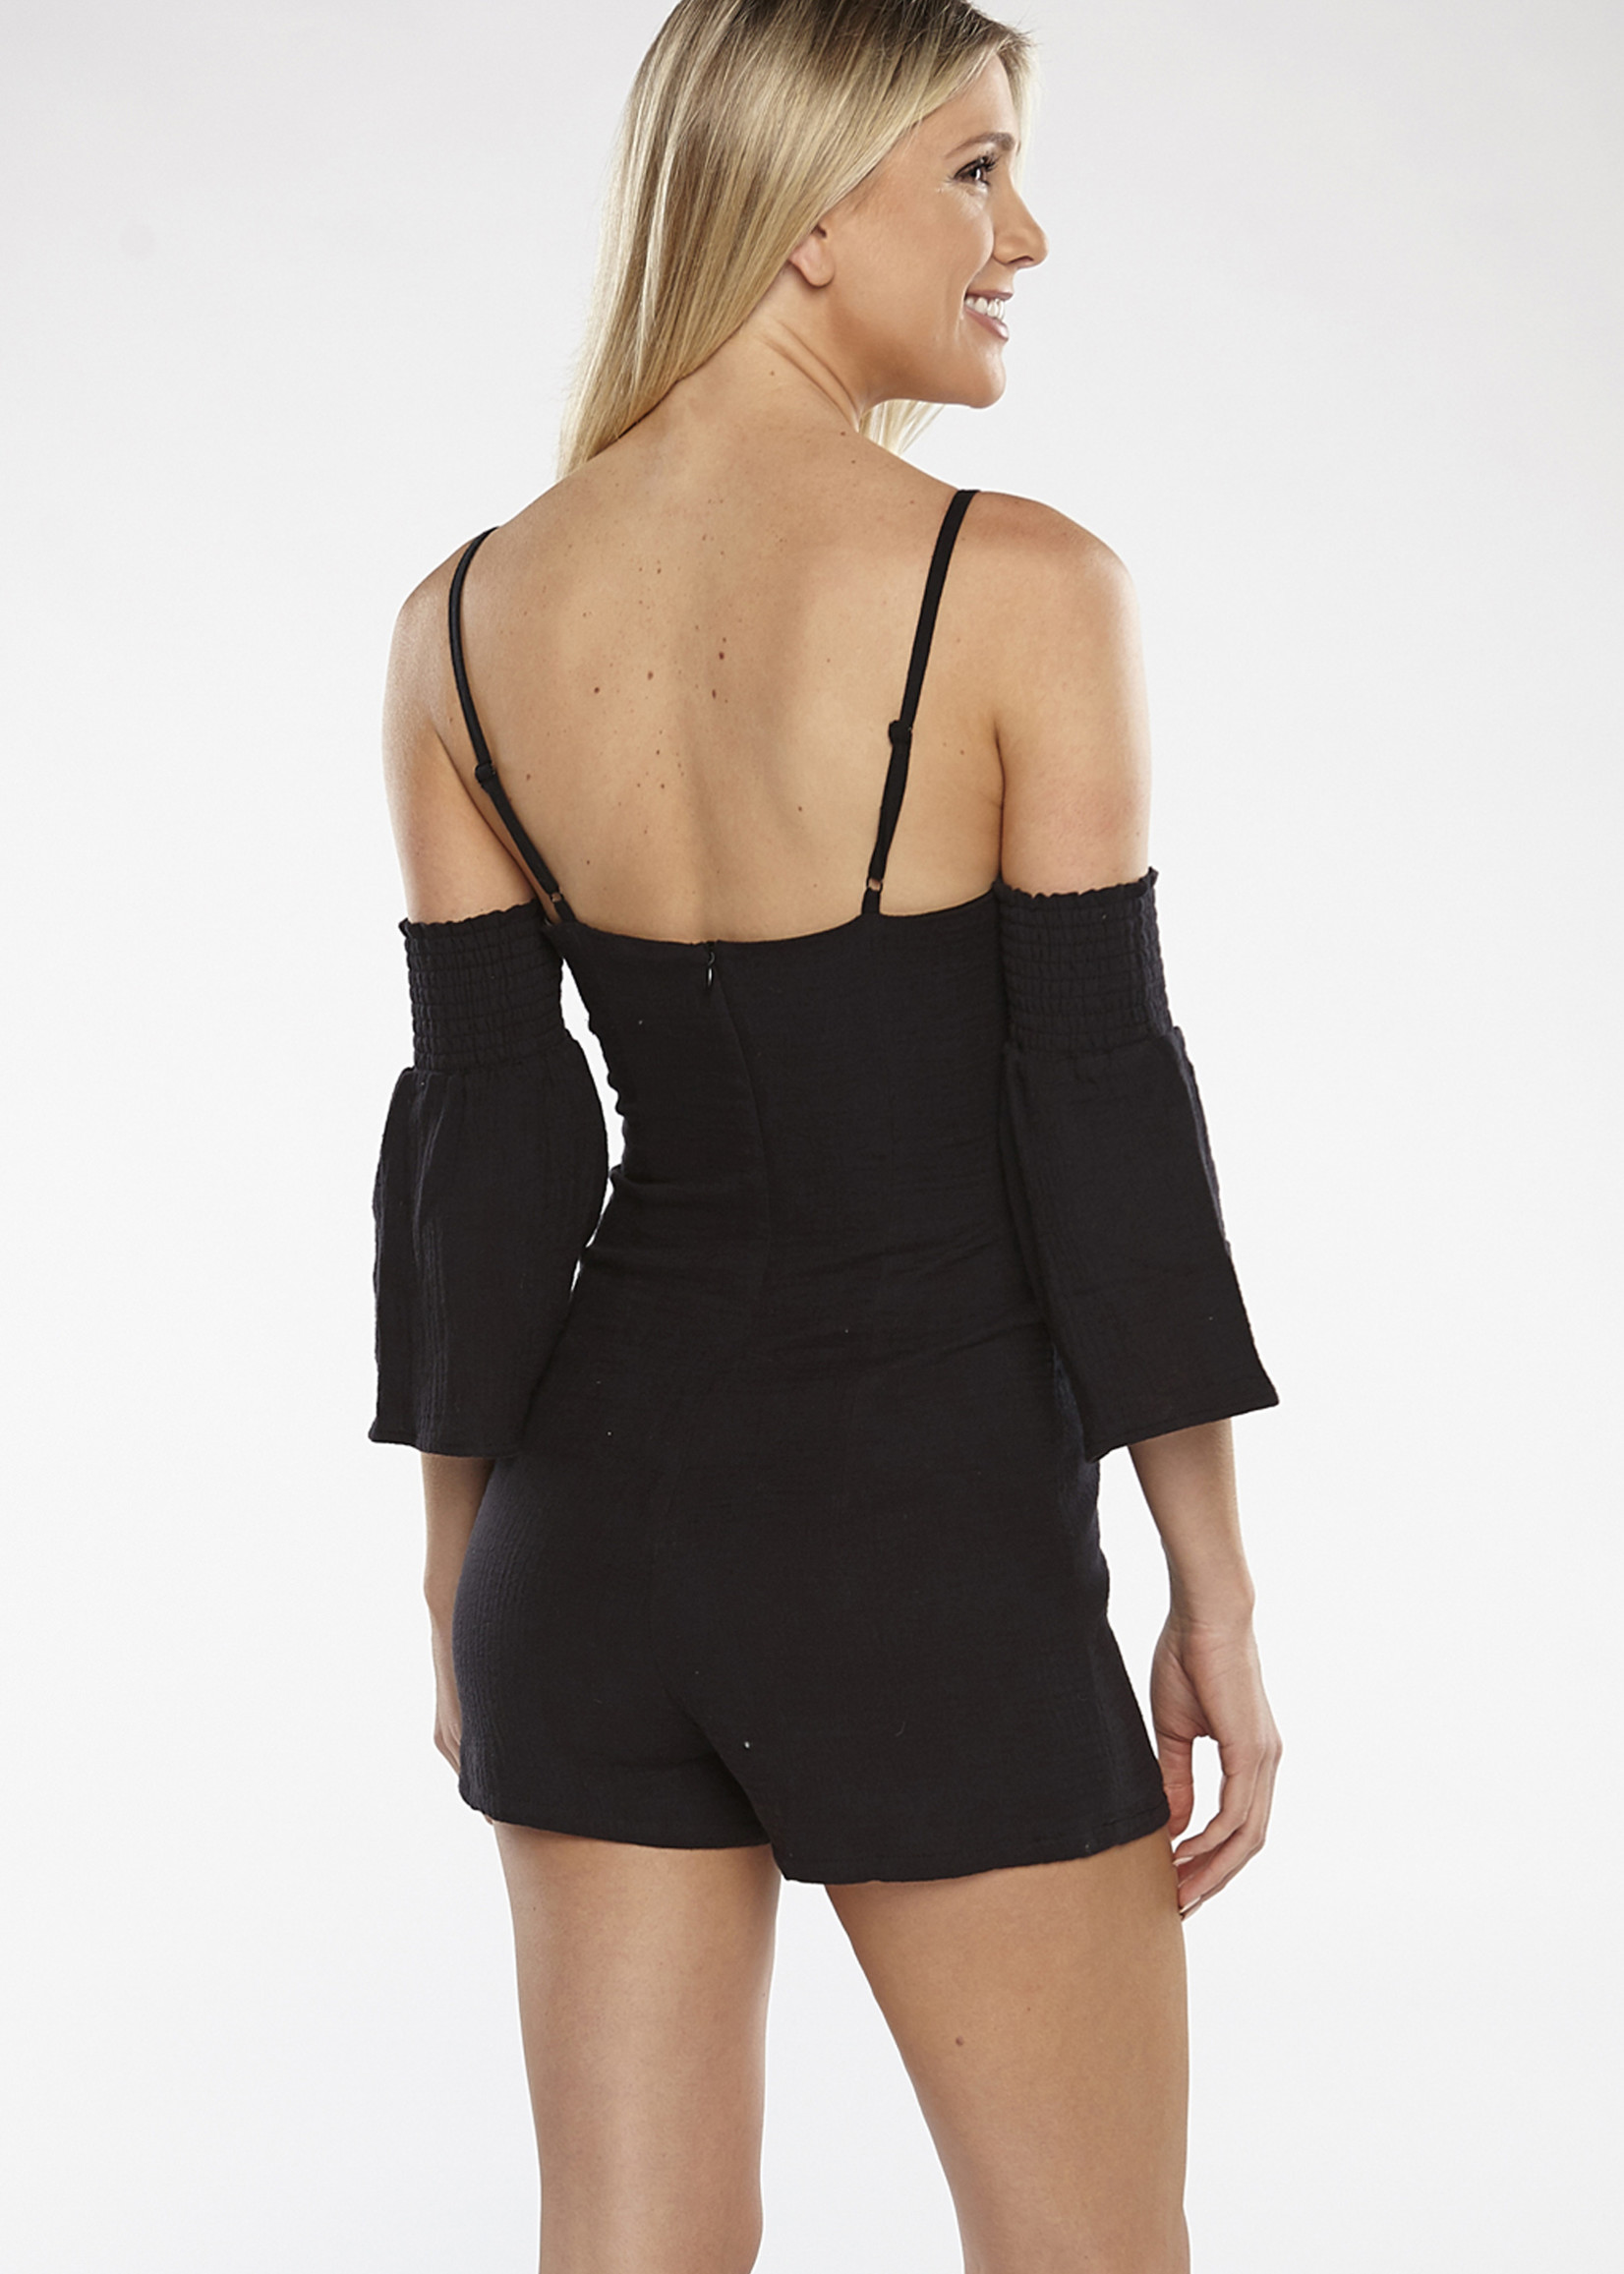 House of Wallace Alexis Romper